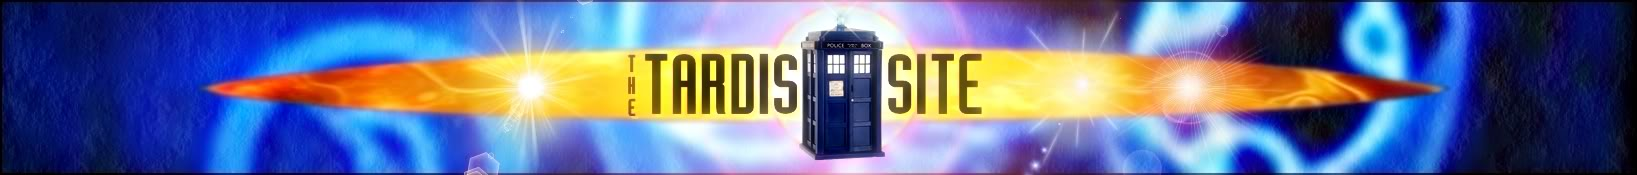 The TARDIS Site